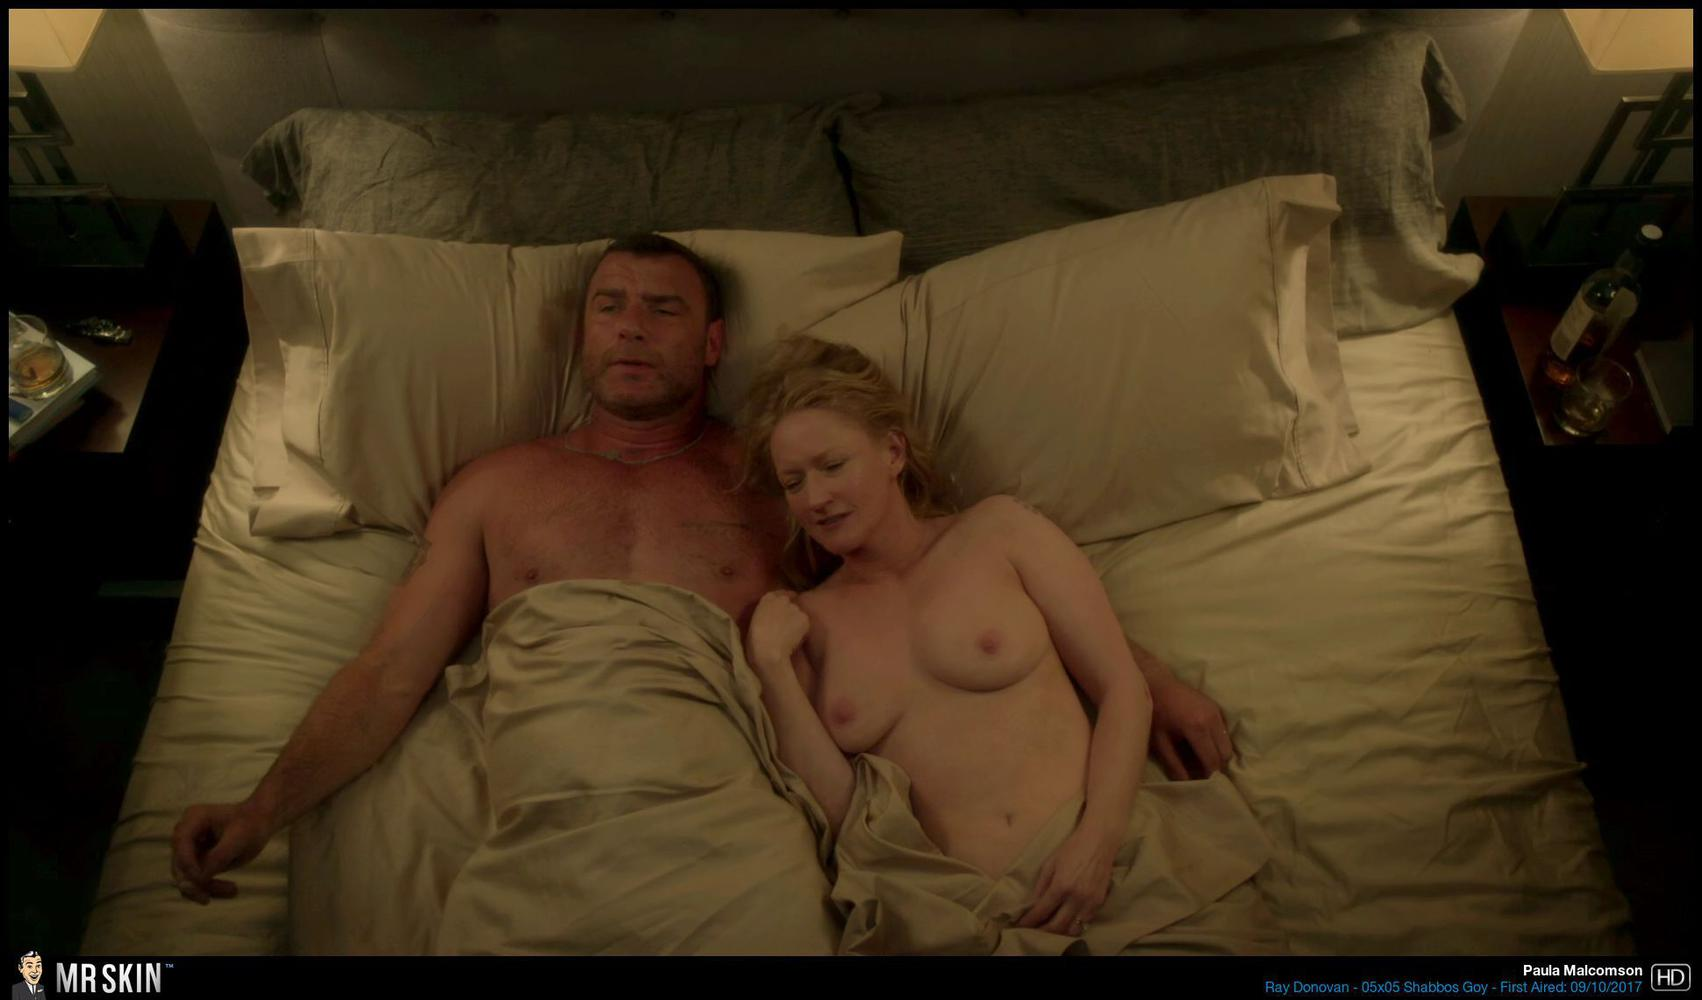 tv nudity report get shorty ray donovan ballers the